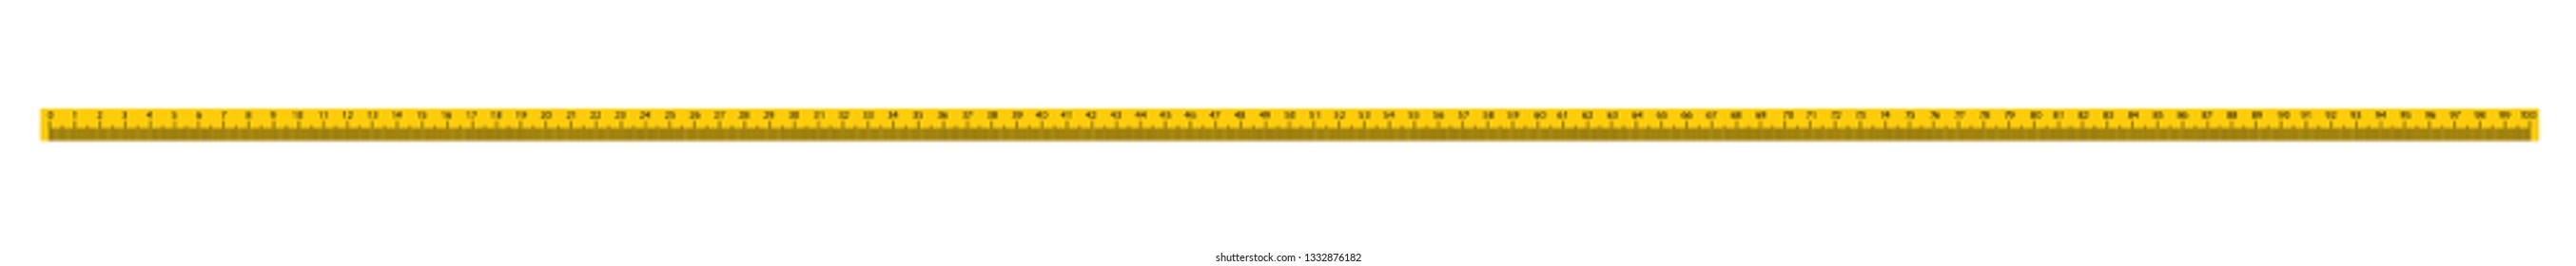 Measure Tape ruler metric measurement. 100 centimeters metric vector ruler with yellow and black color.